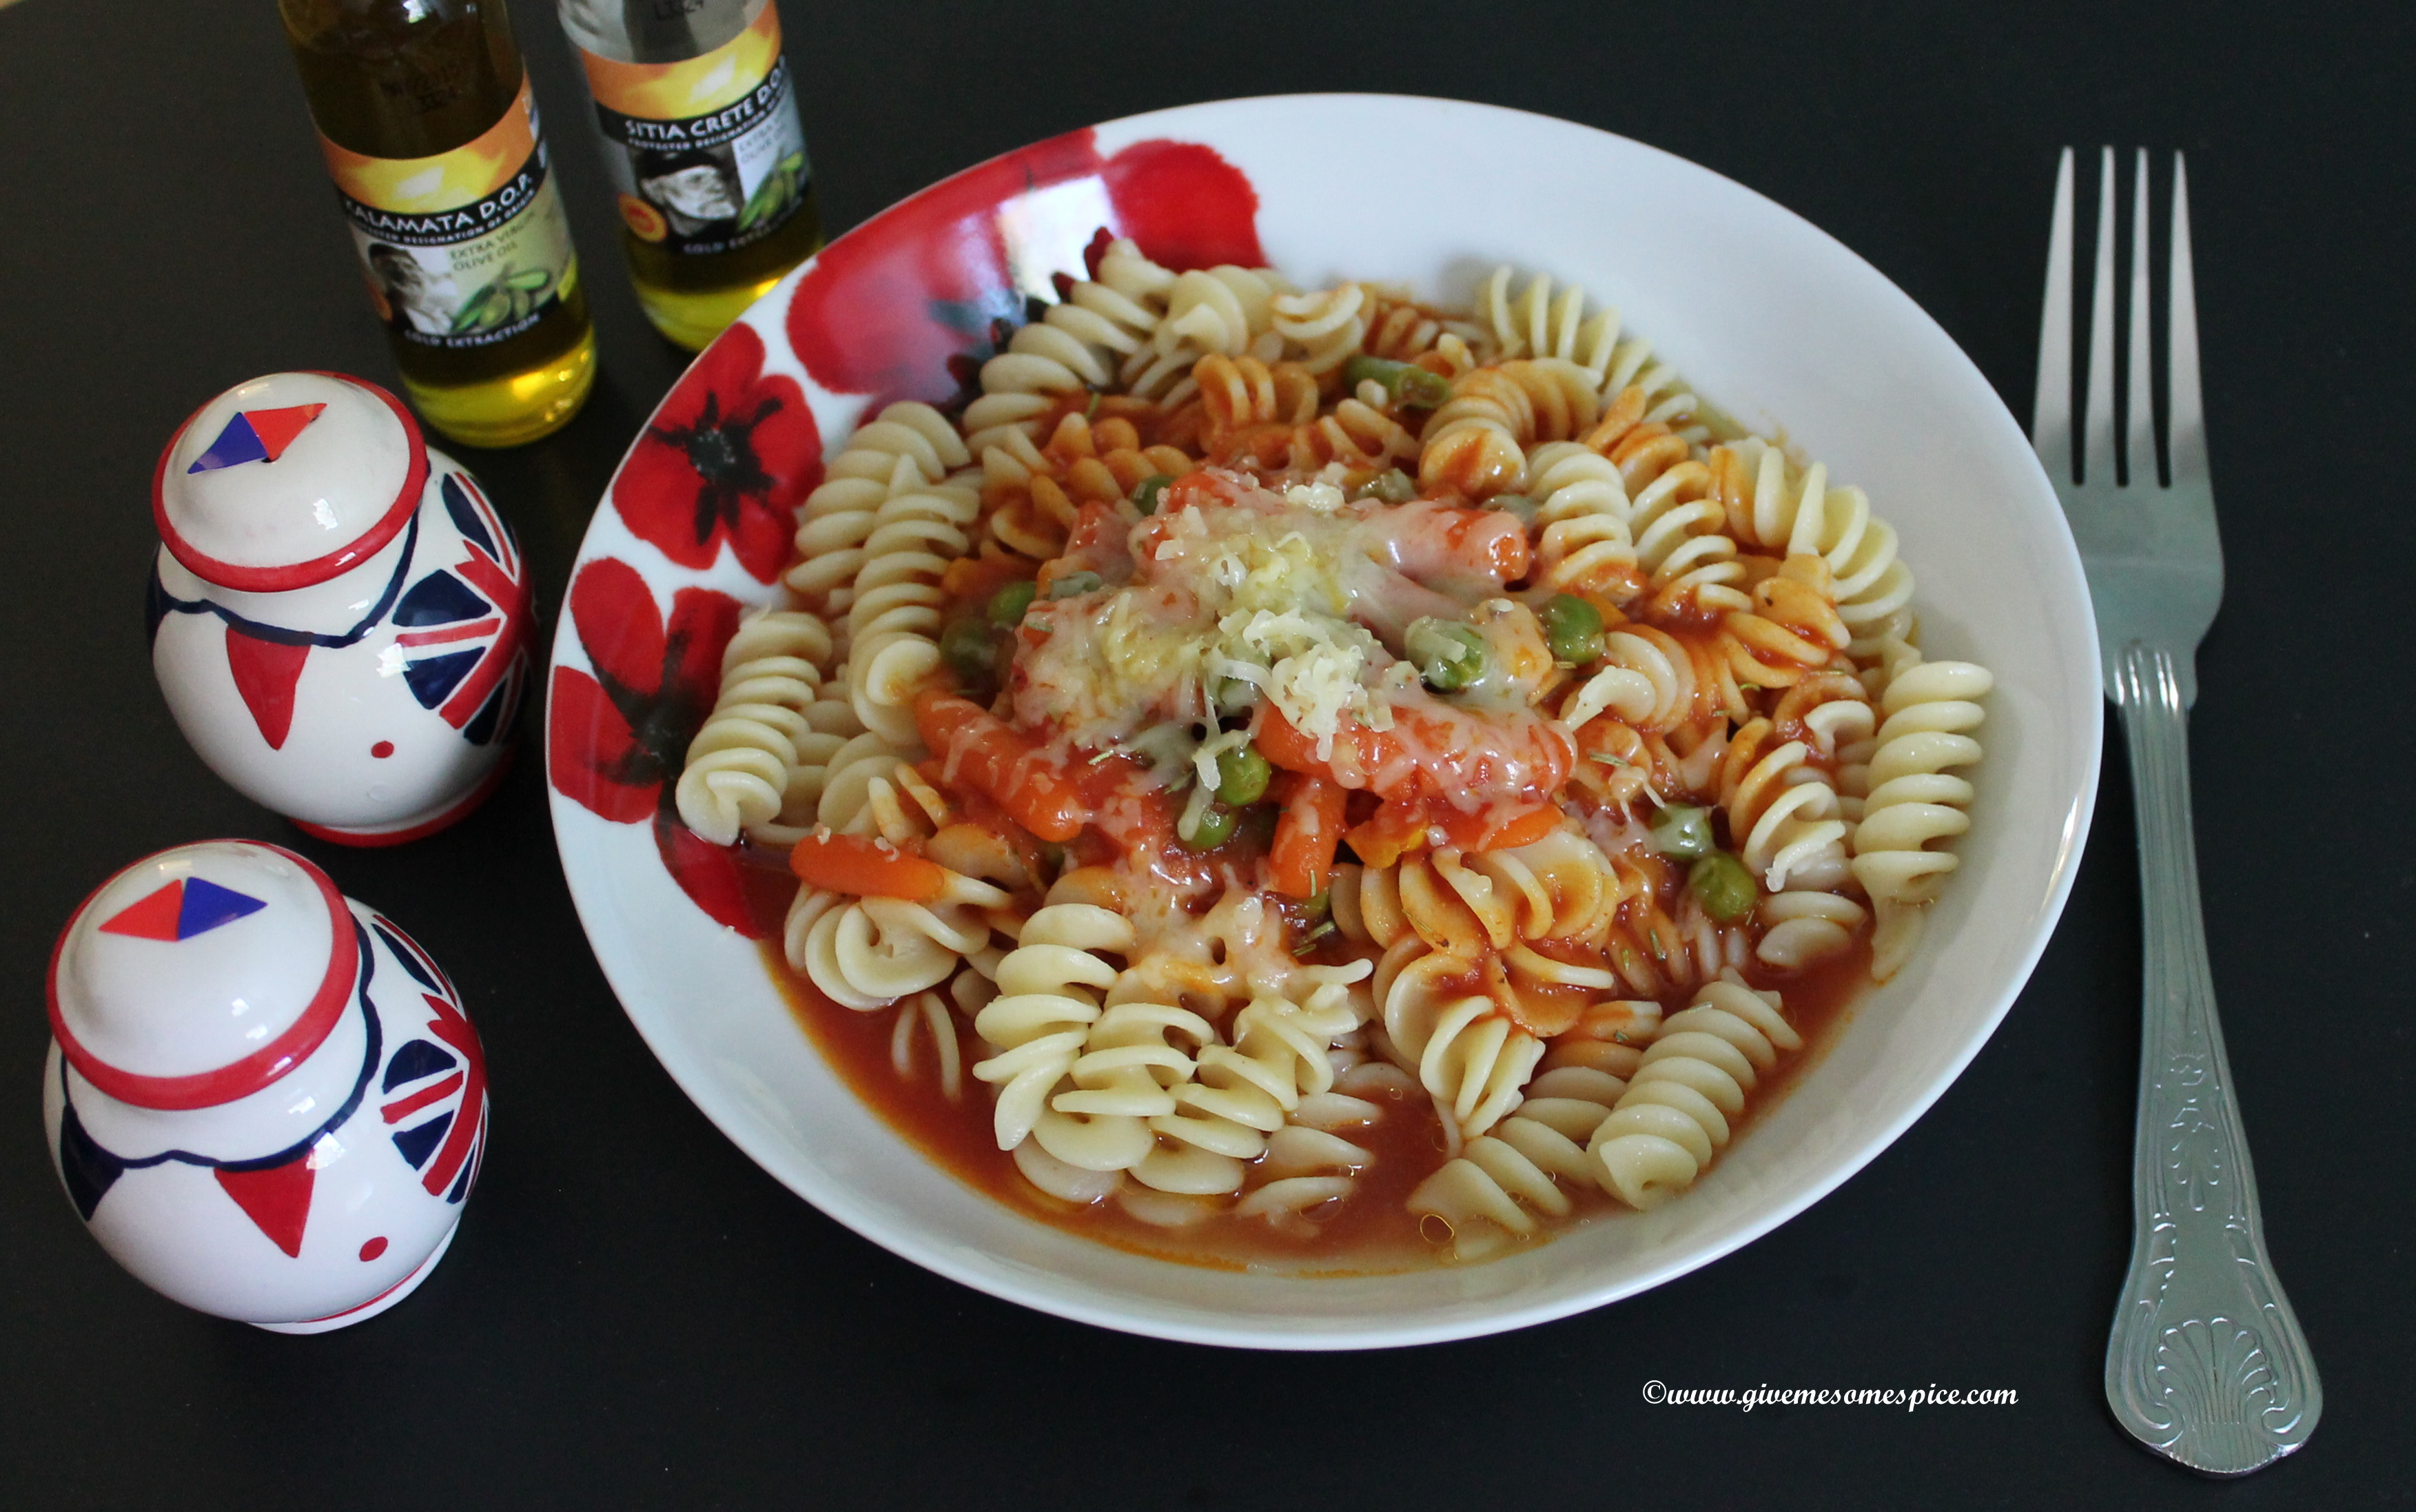 Fusilli Pasta made with Indian Spices